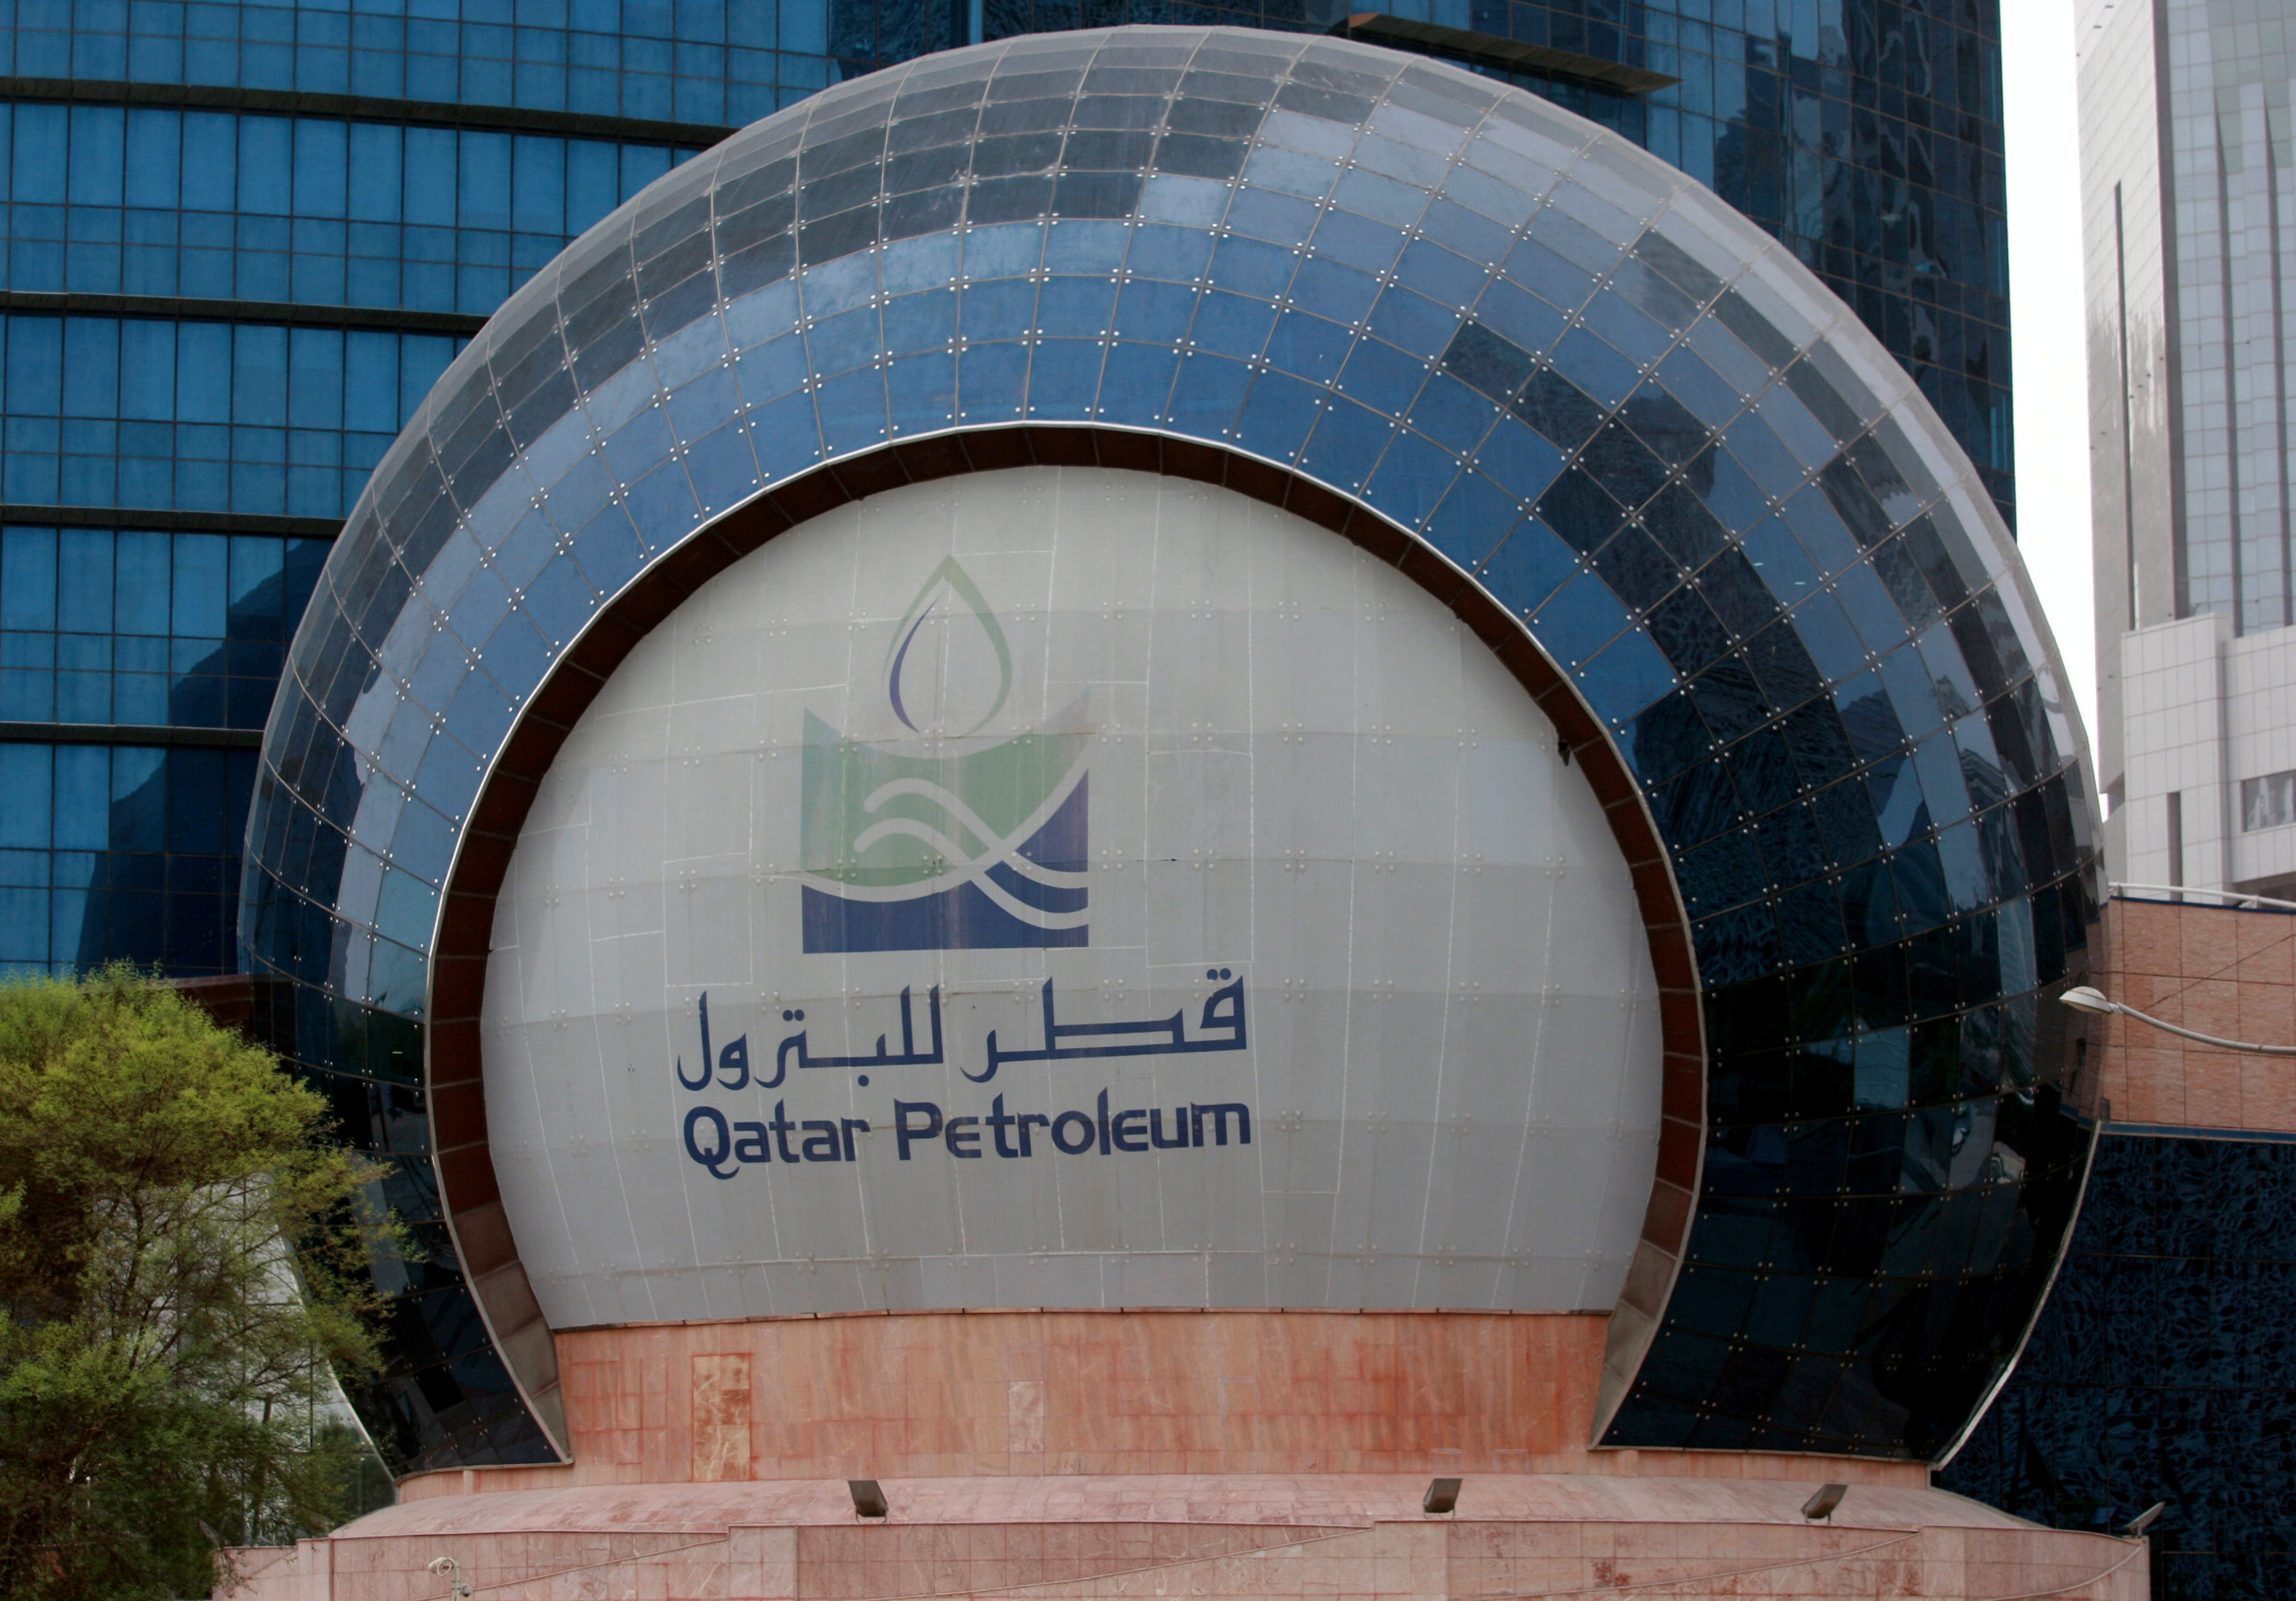 The logo of Qatar Petroleum is seen at its headquartes in Doha, Qatar, July 8, 2017. Picture taken July 8, 2017. REUTERS/Stringer